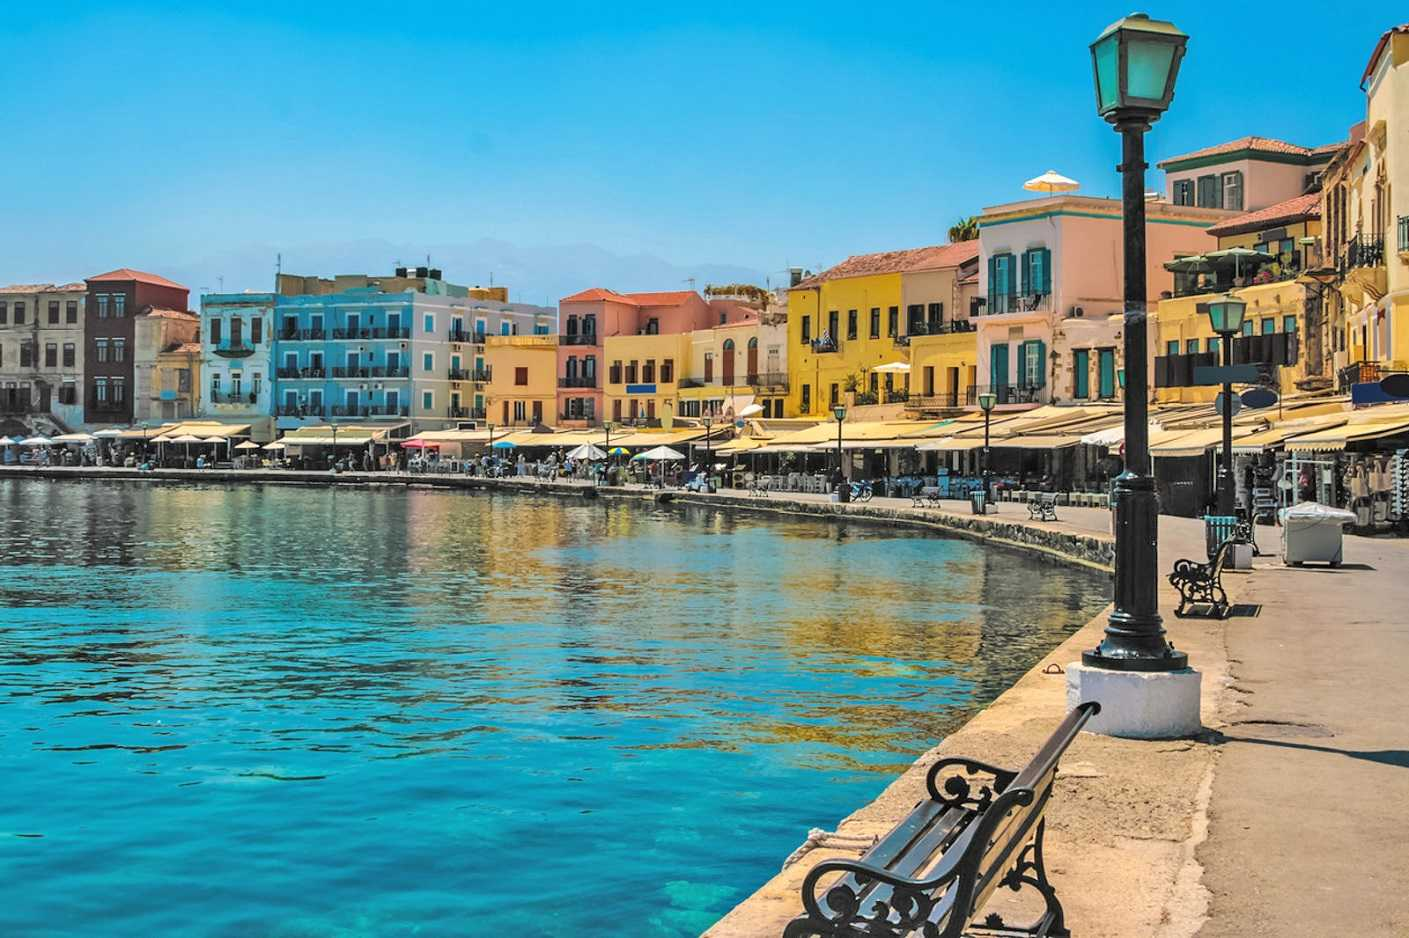 Seafront Hotel for sale Old Town Chania. ID 02-095